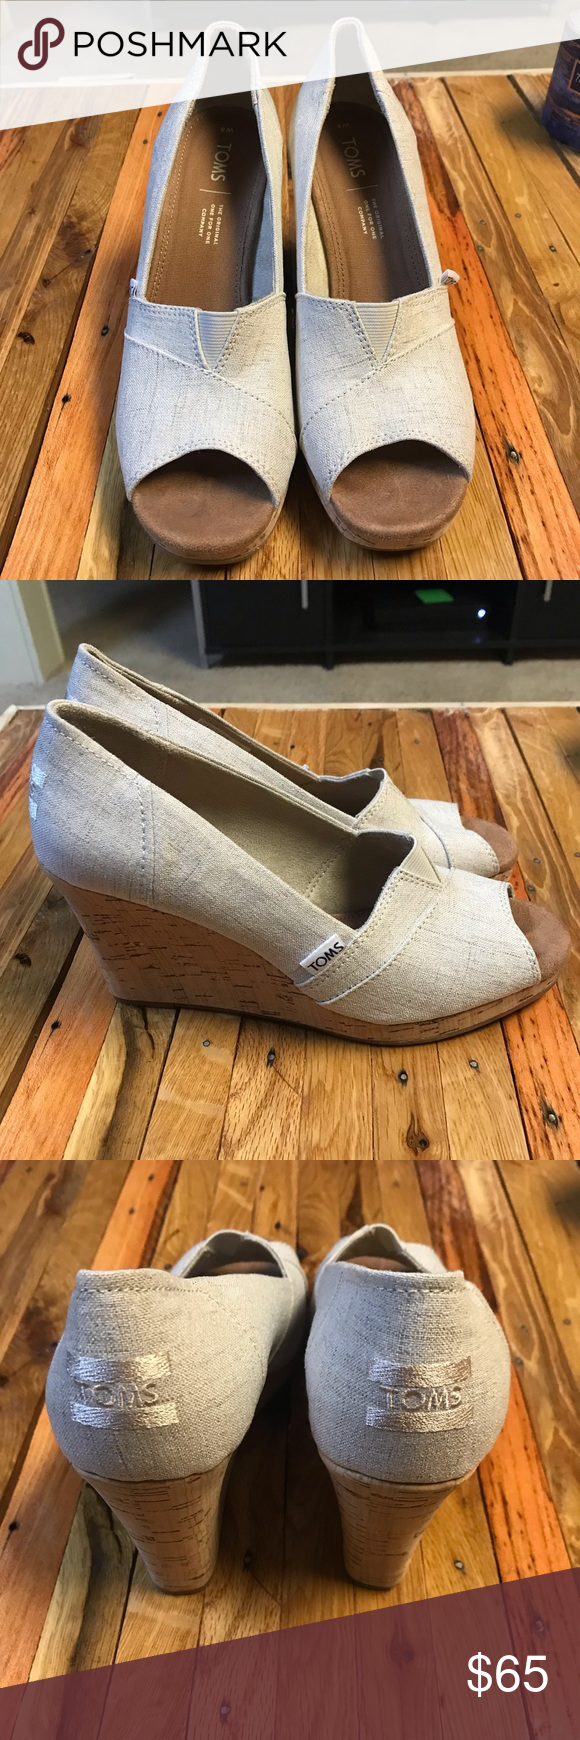 Toms Wedge Heels New Toms Wedges In perfect condition, only worn once.  Beige/cream colored. Toms Shoes Wedges #tomwedges